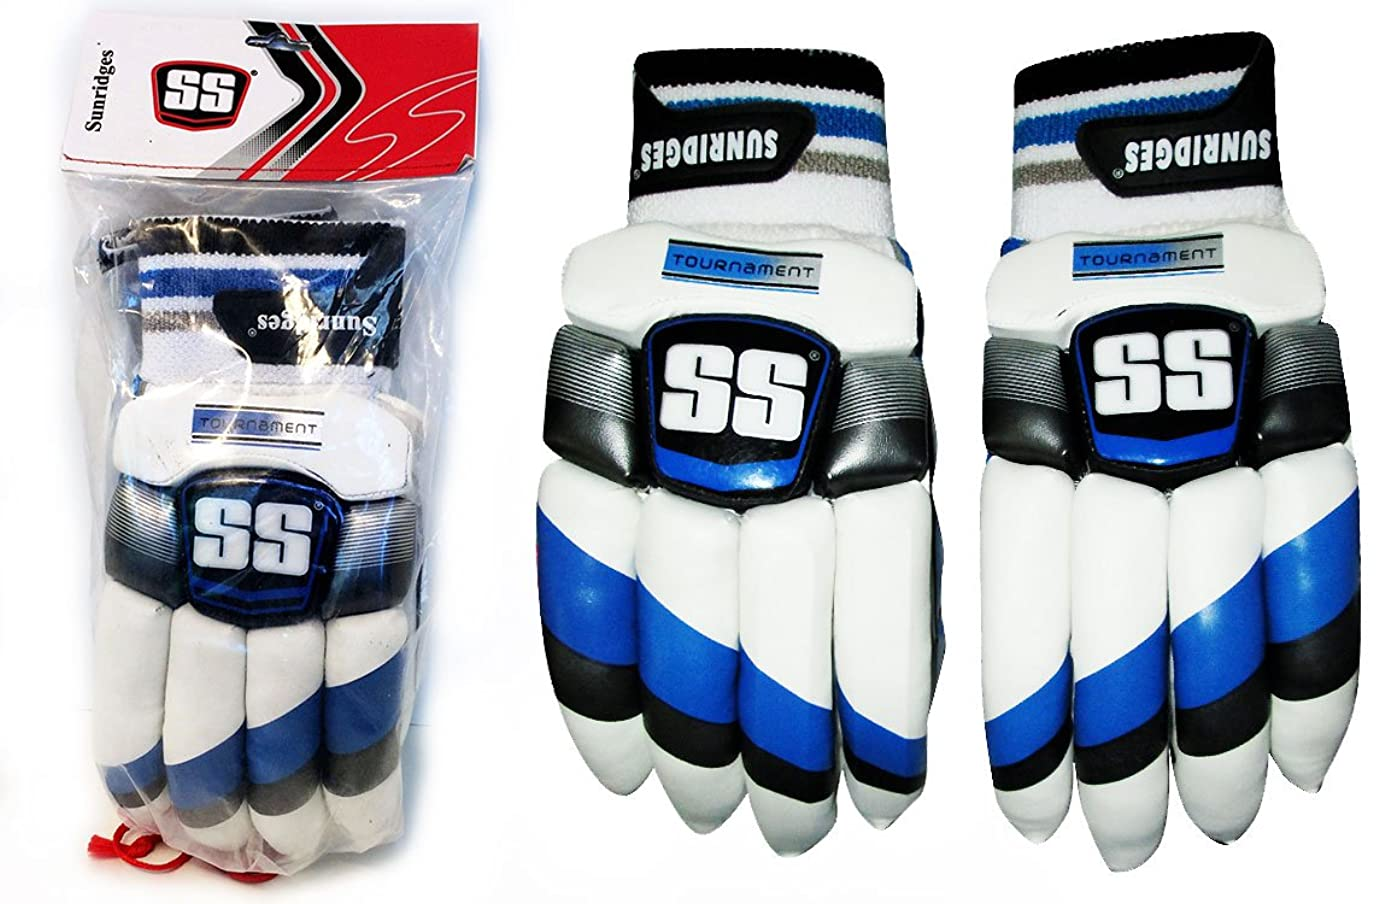 SS Cricket Batting Gloves Tournament PRO Soft Fill by Sunridges (Men Left Handed) arg3073645